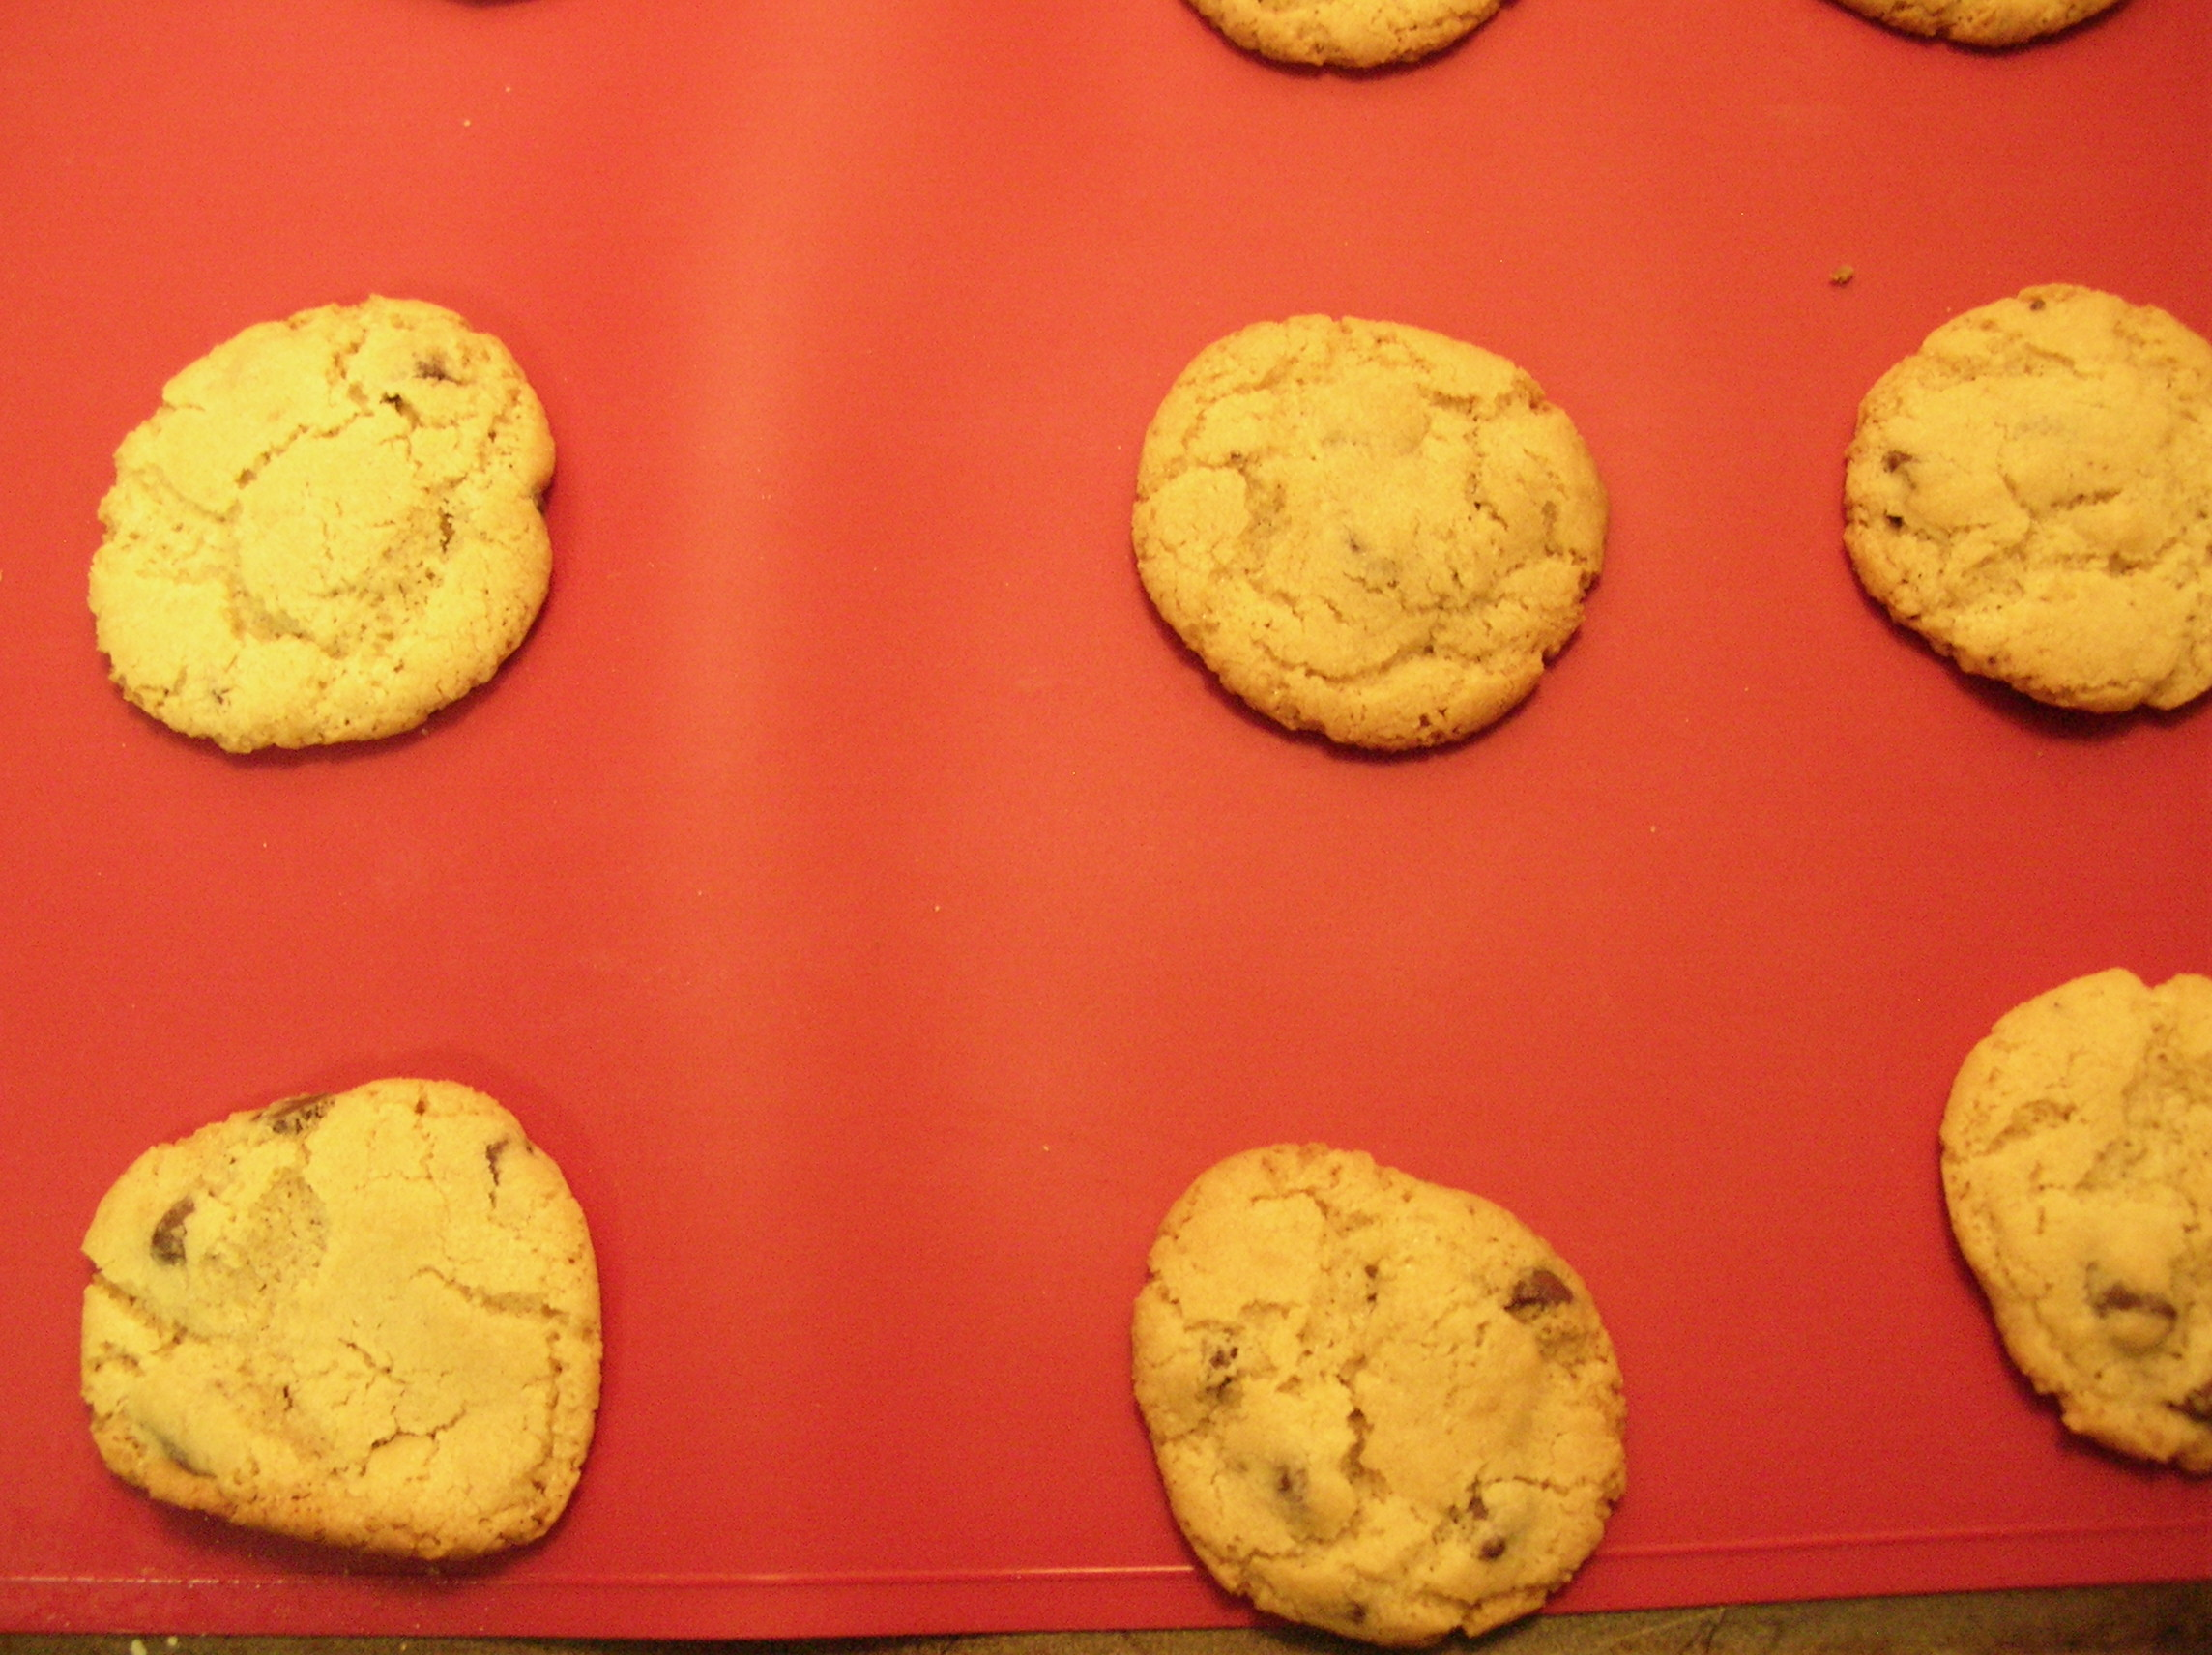 Betty Crocker Gluten Free Chocolate Chip Cookie Mix Product Review ...